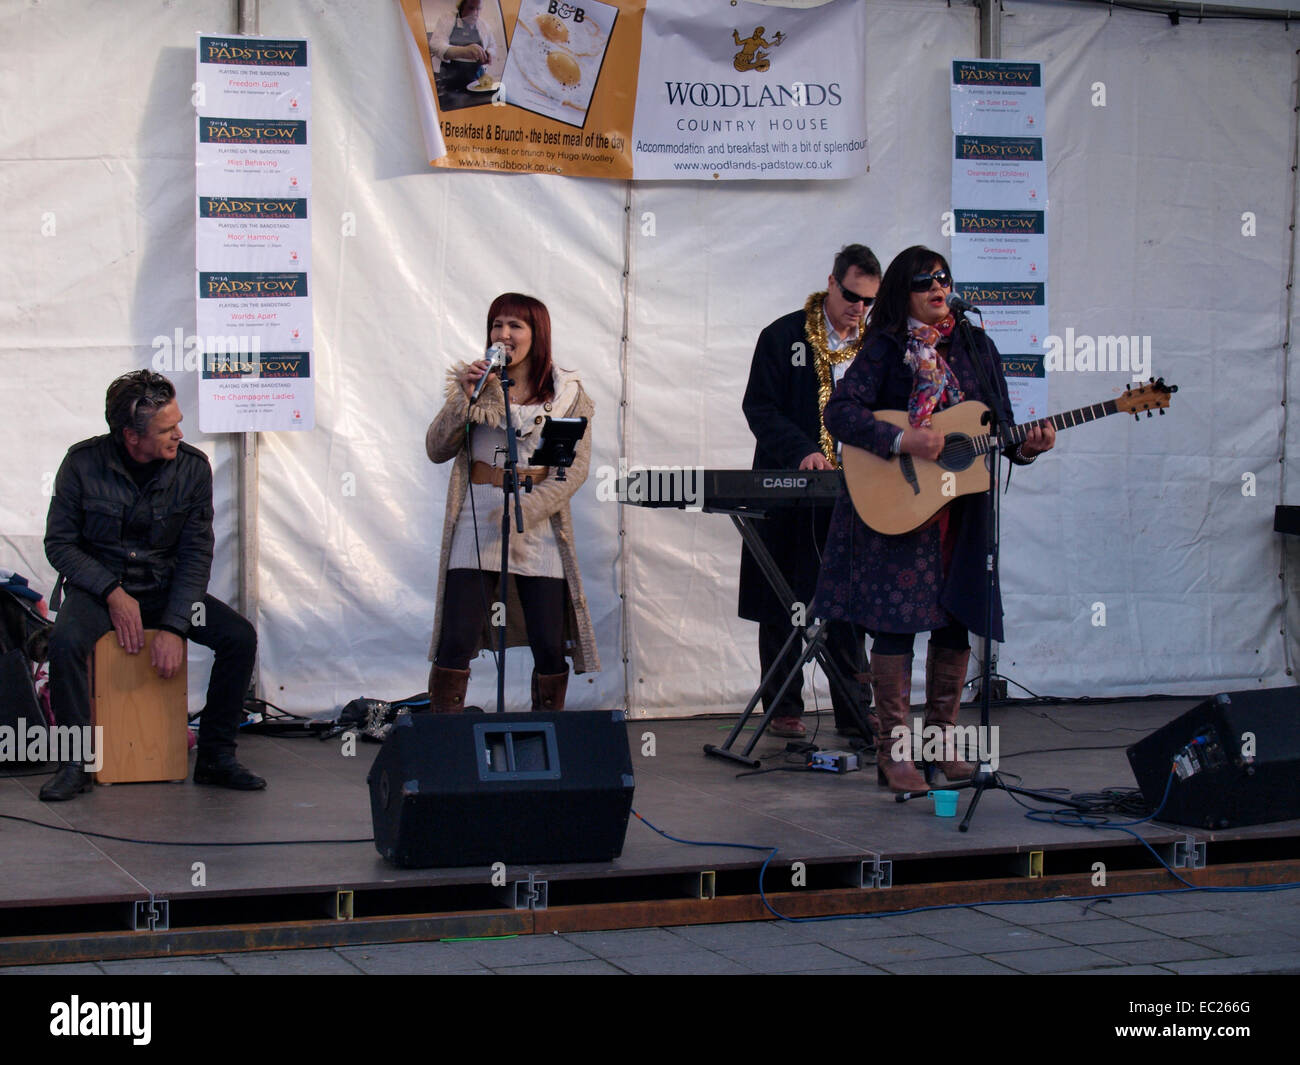 Musical group, Little Loving on stage at the Padstow Christmas festival, Cornwall, UK - Stock Image